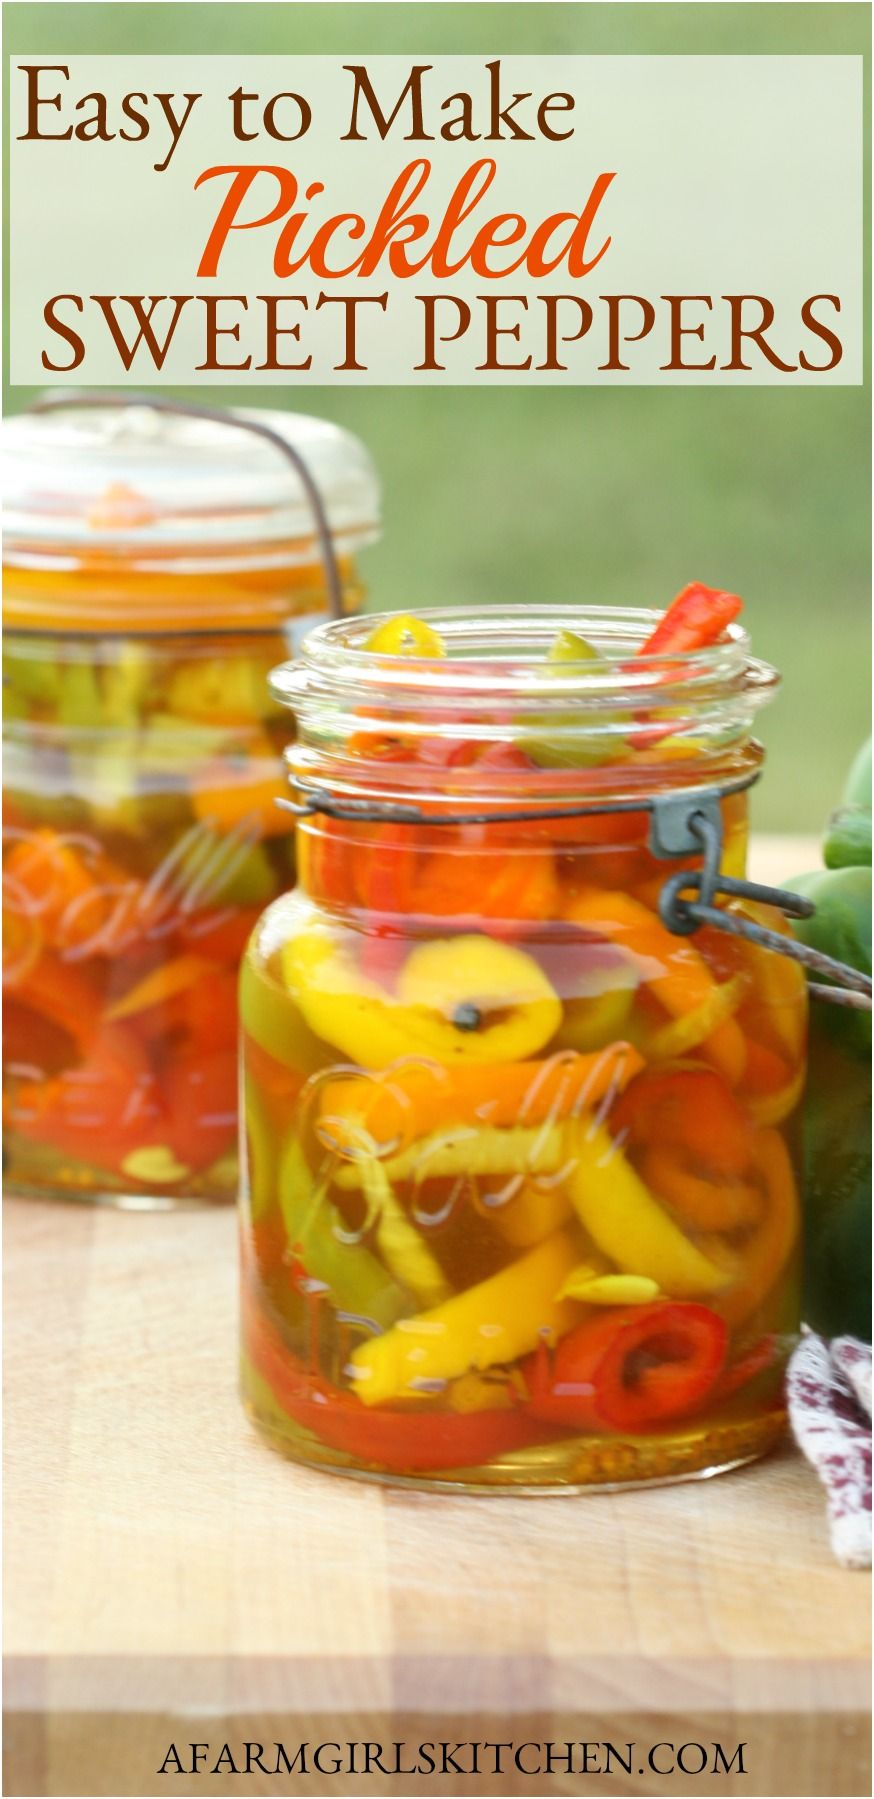 Pickled Sweet Peppers Easy To Make In 2020 Pickled Sweet Peppers Stuffed Sweet Peppers Sweet Pepper Recipes